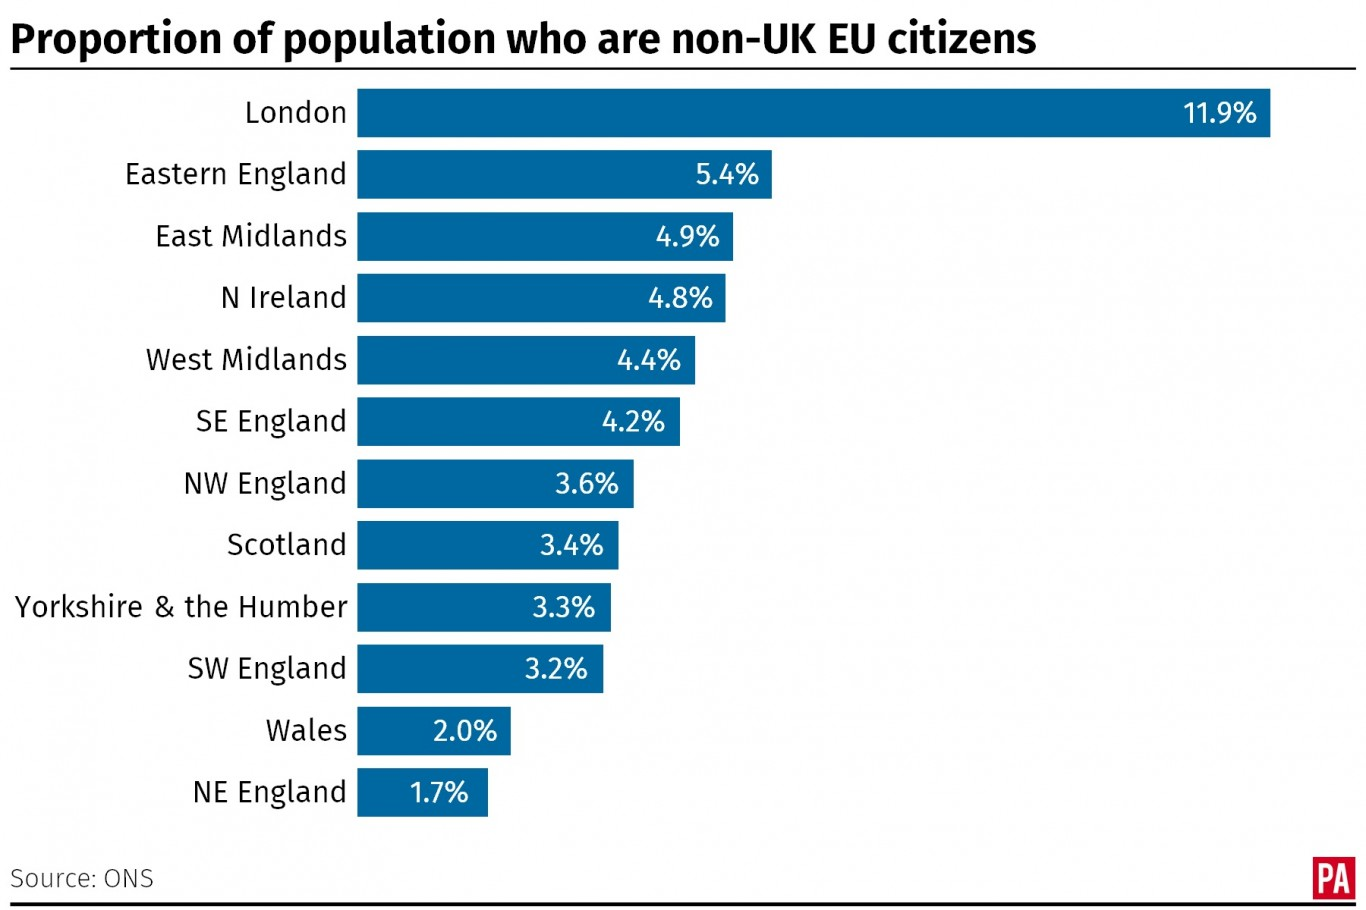 The proportion of the population who are non-UK EU citizens, by nation and region